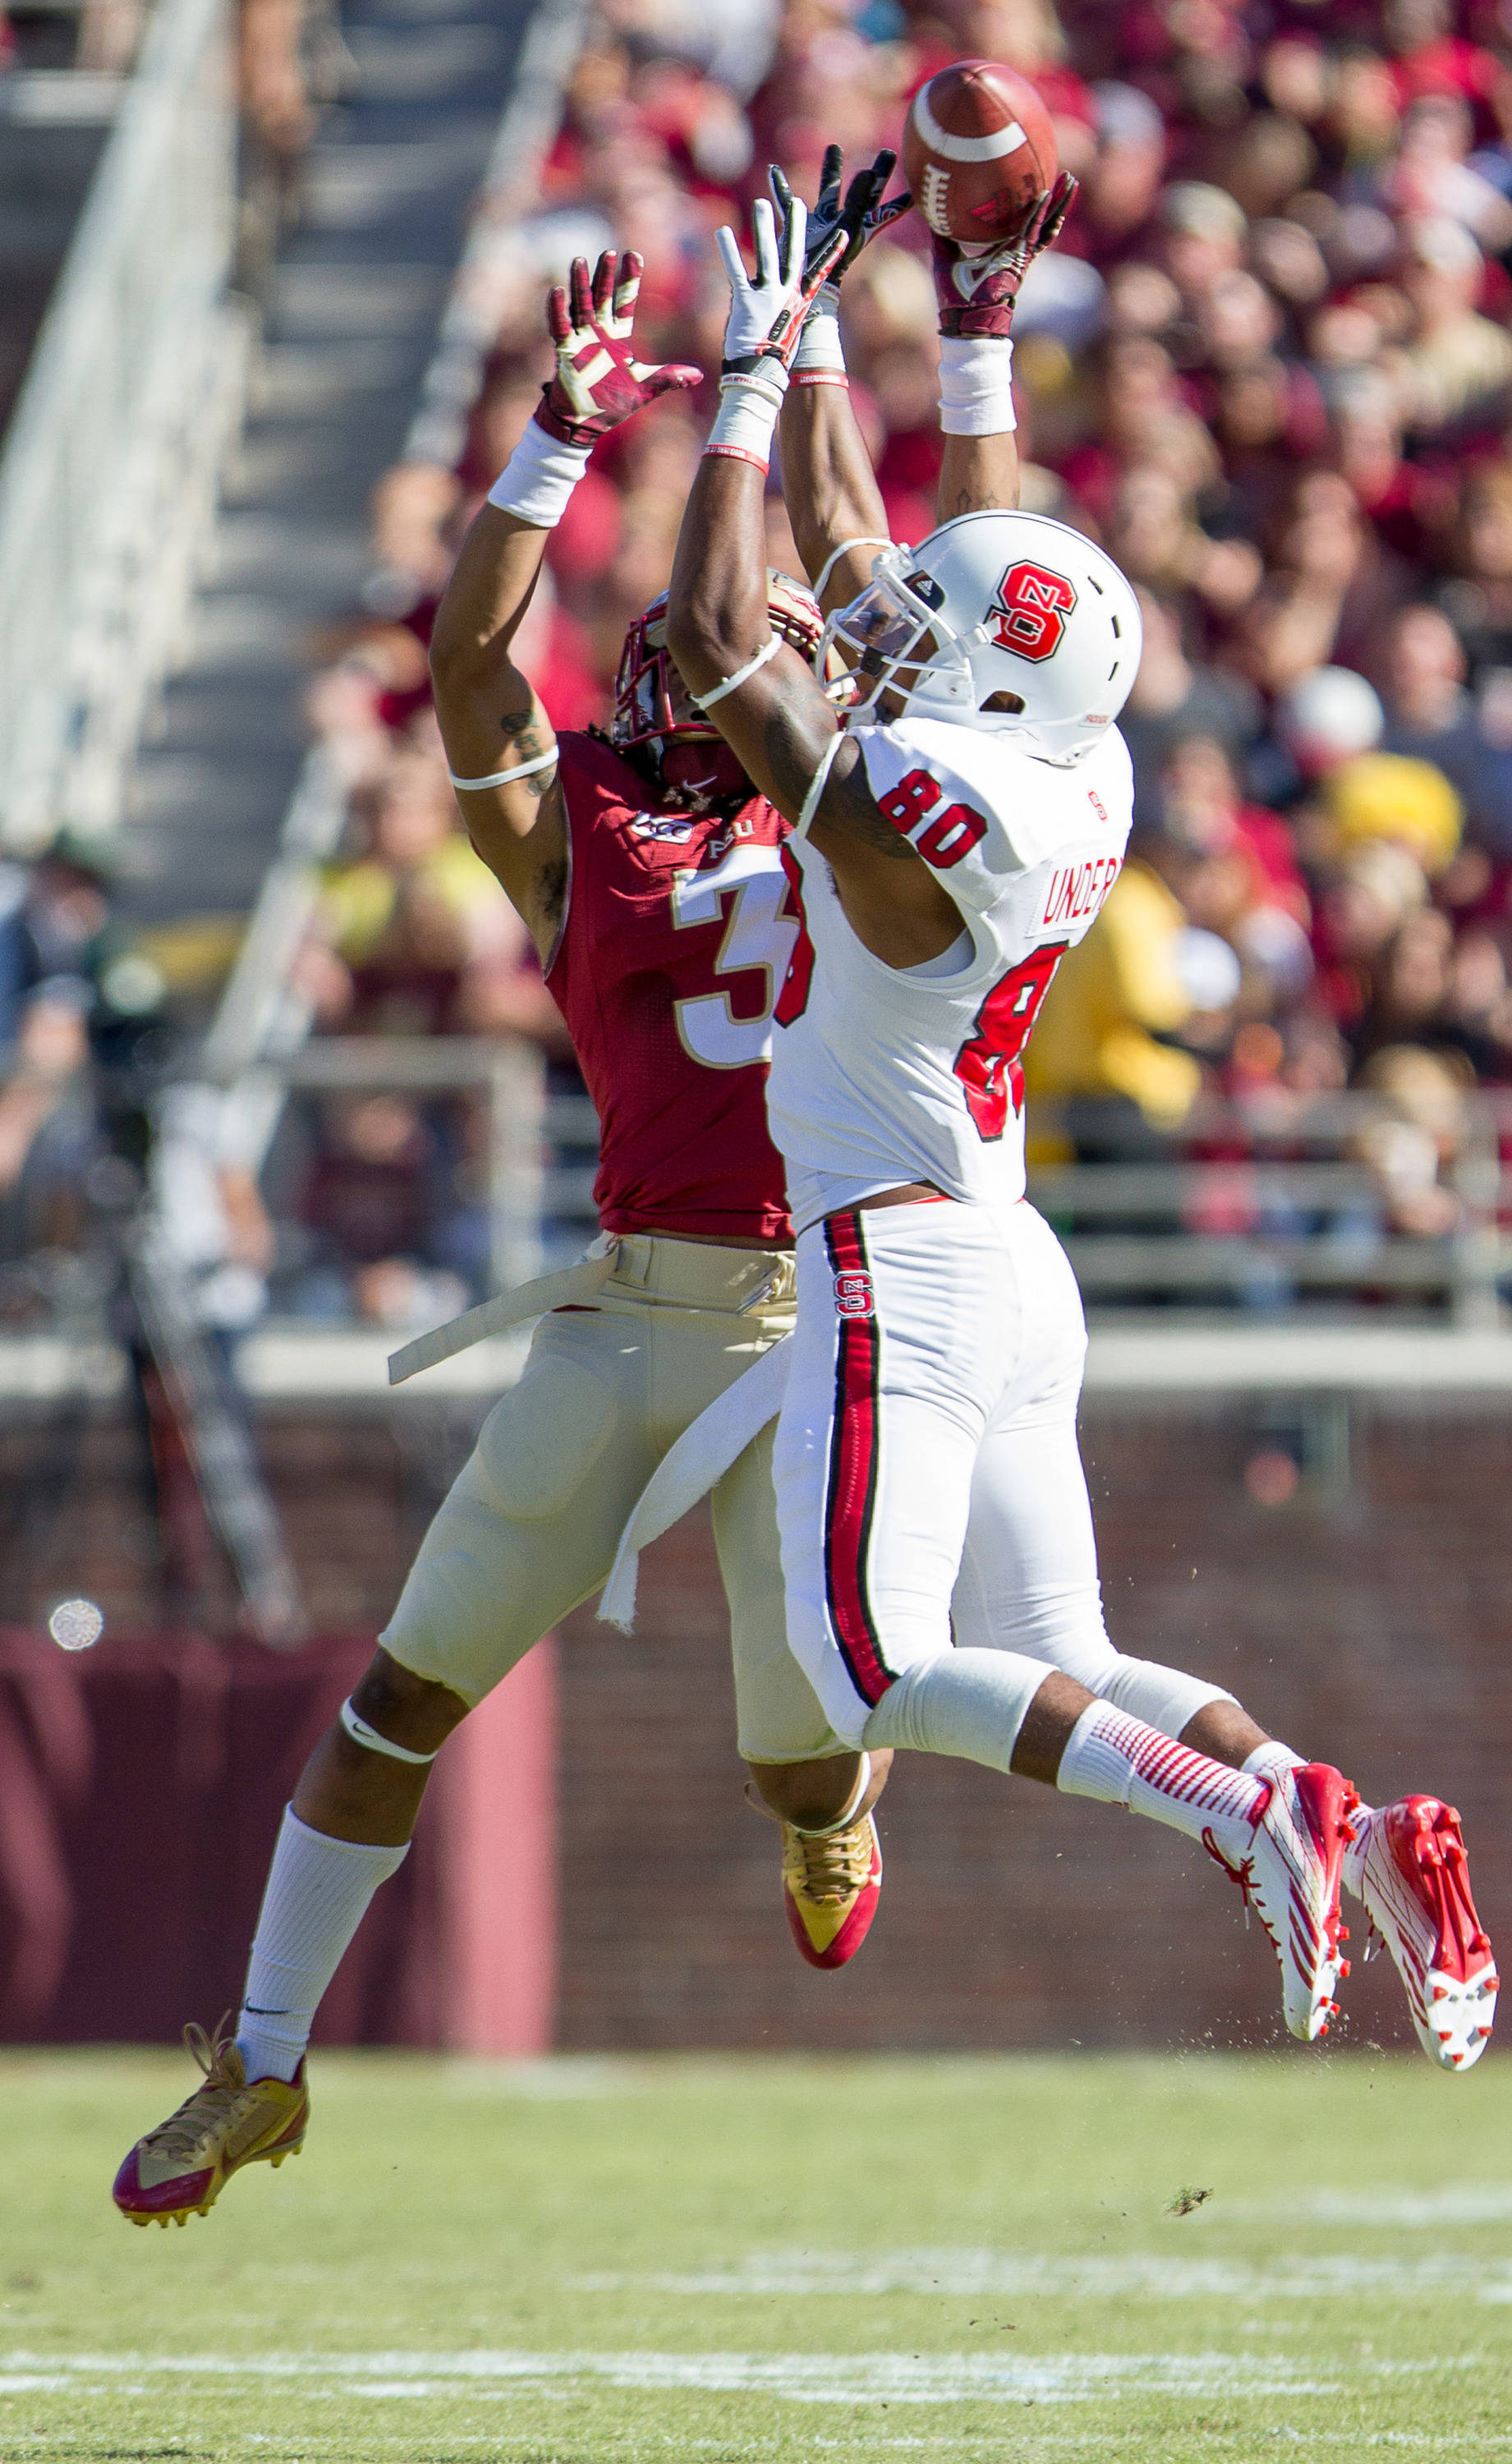 Ronald Darby (3) breaks up a pass during FSU Football's 49-17 win over NC State on Saturday, October 26, 2013 in Tallahassee, Fla. Photo by Michael Schwarz.